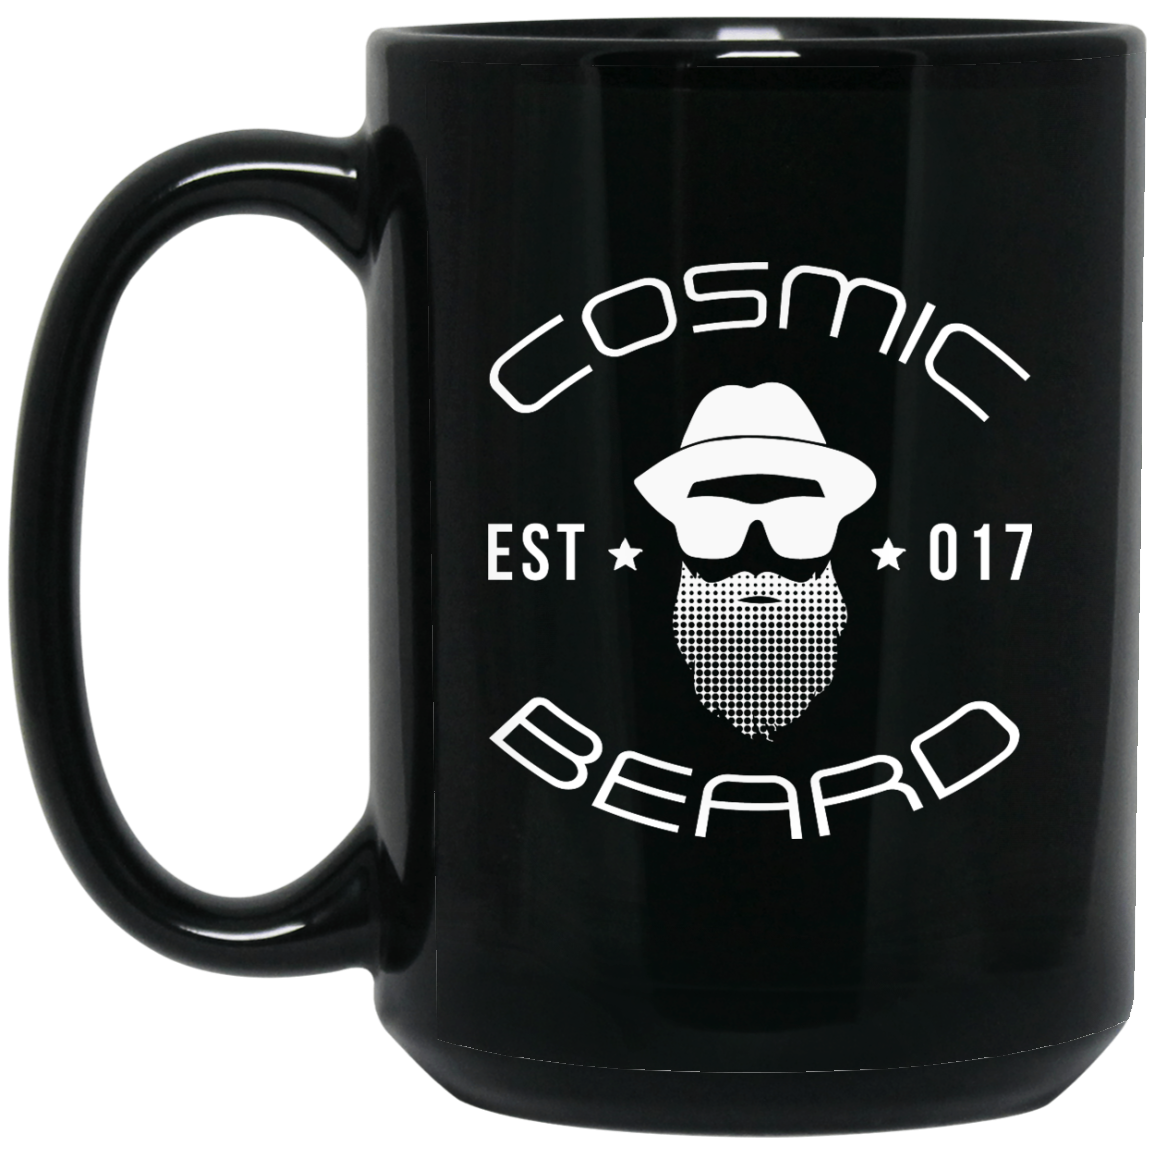 Cosmic Beard Branded 15 oz. Black Mug